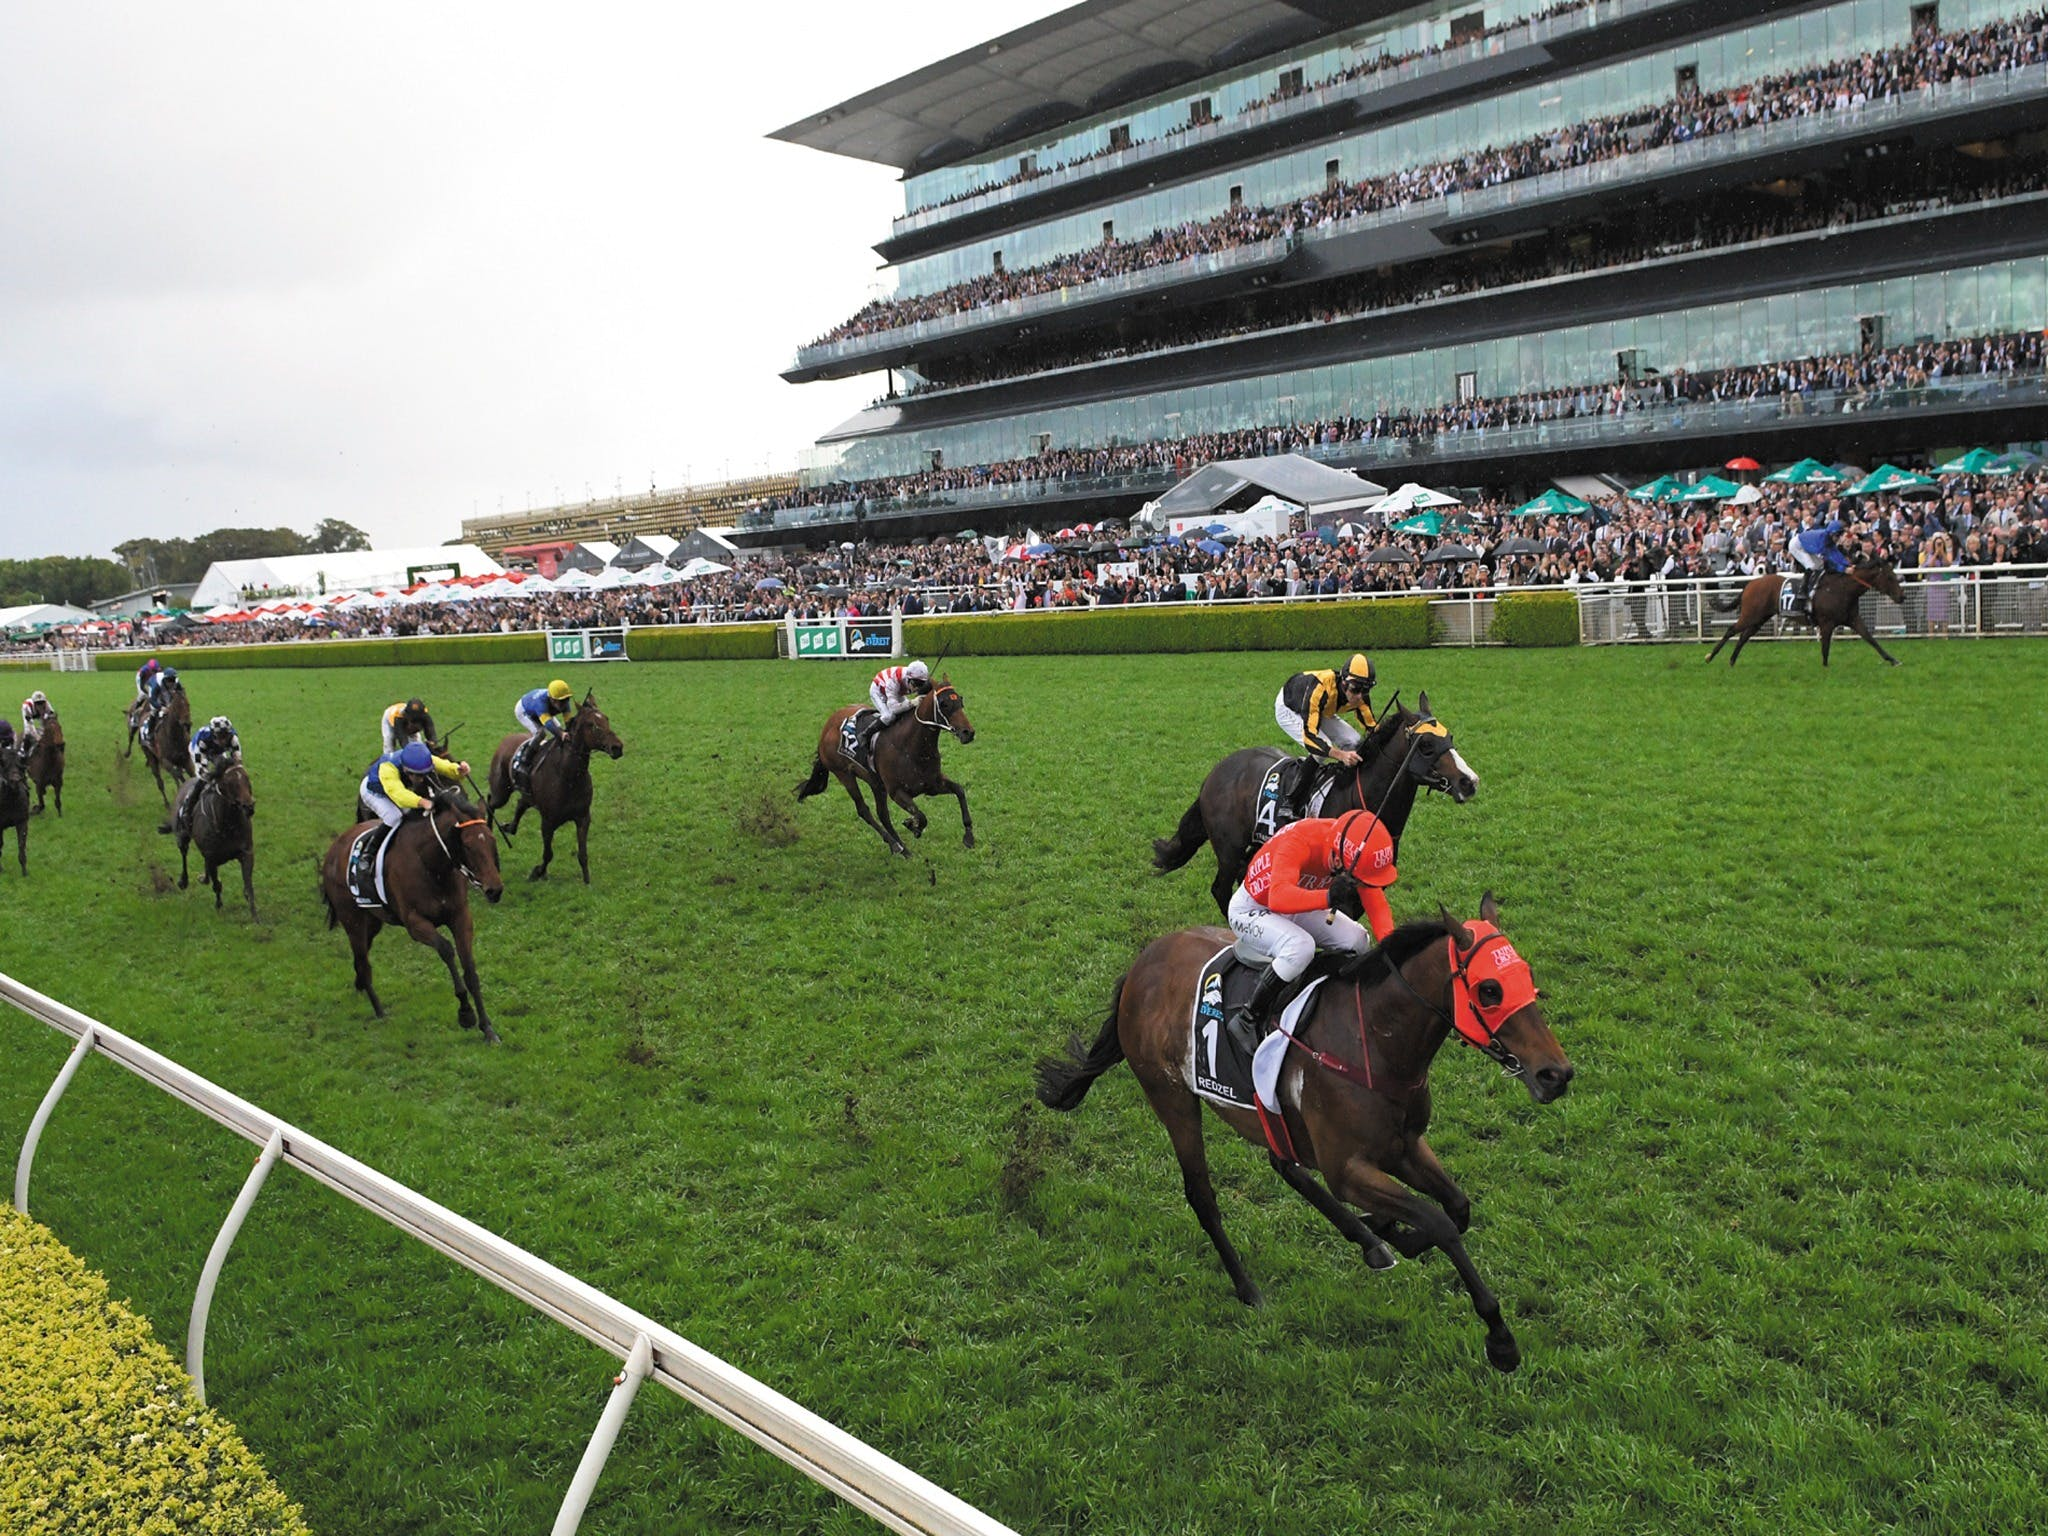 The TAB Everest The Worlds Richest Race On Turf - Restaurants Sydney